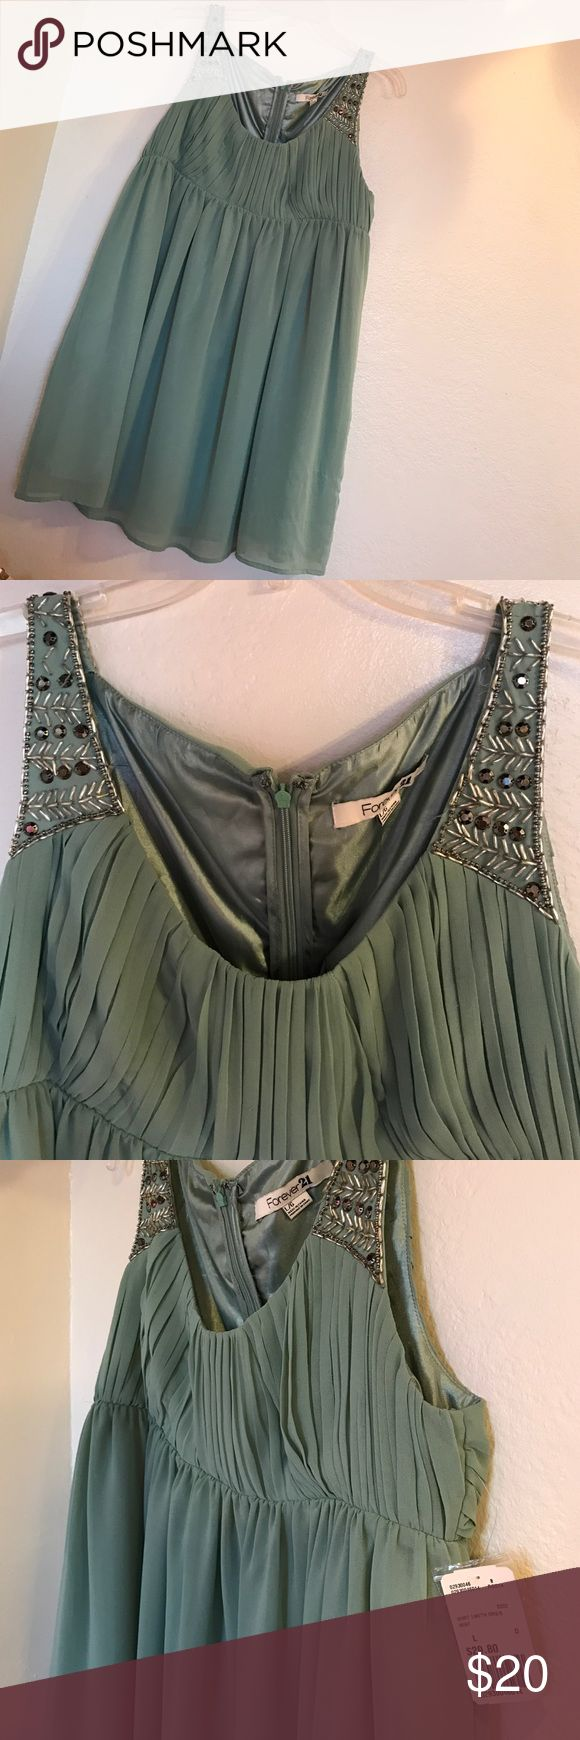 Hunter Green Tank Dress Band new with tag. Great for holiday parties, weddings and beyond. 🎉 Forever 21 Dresses Wedding